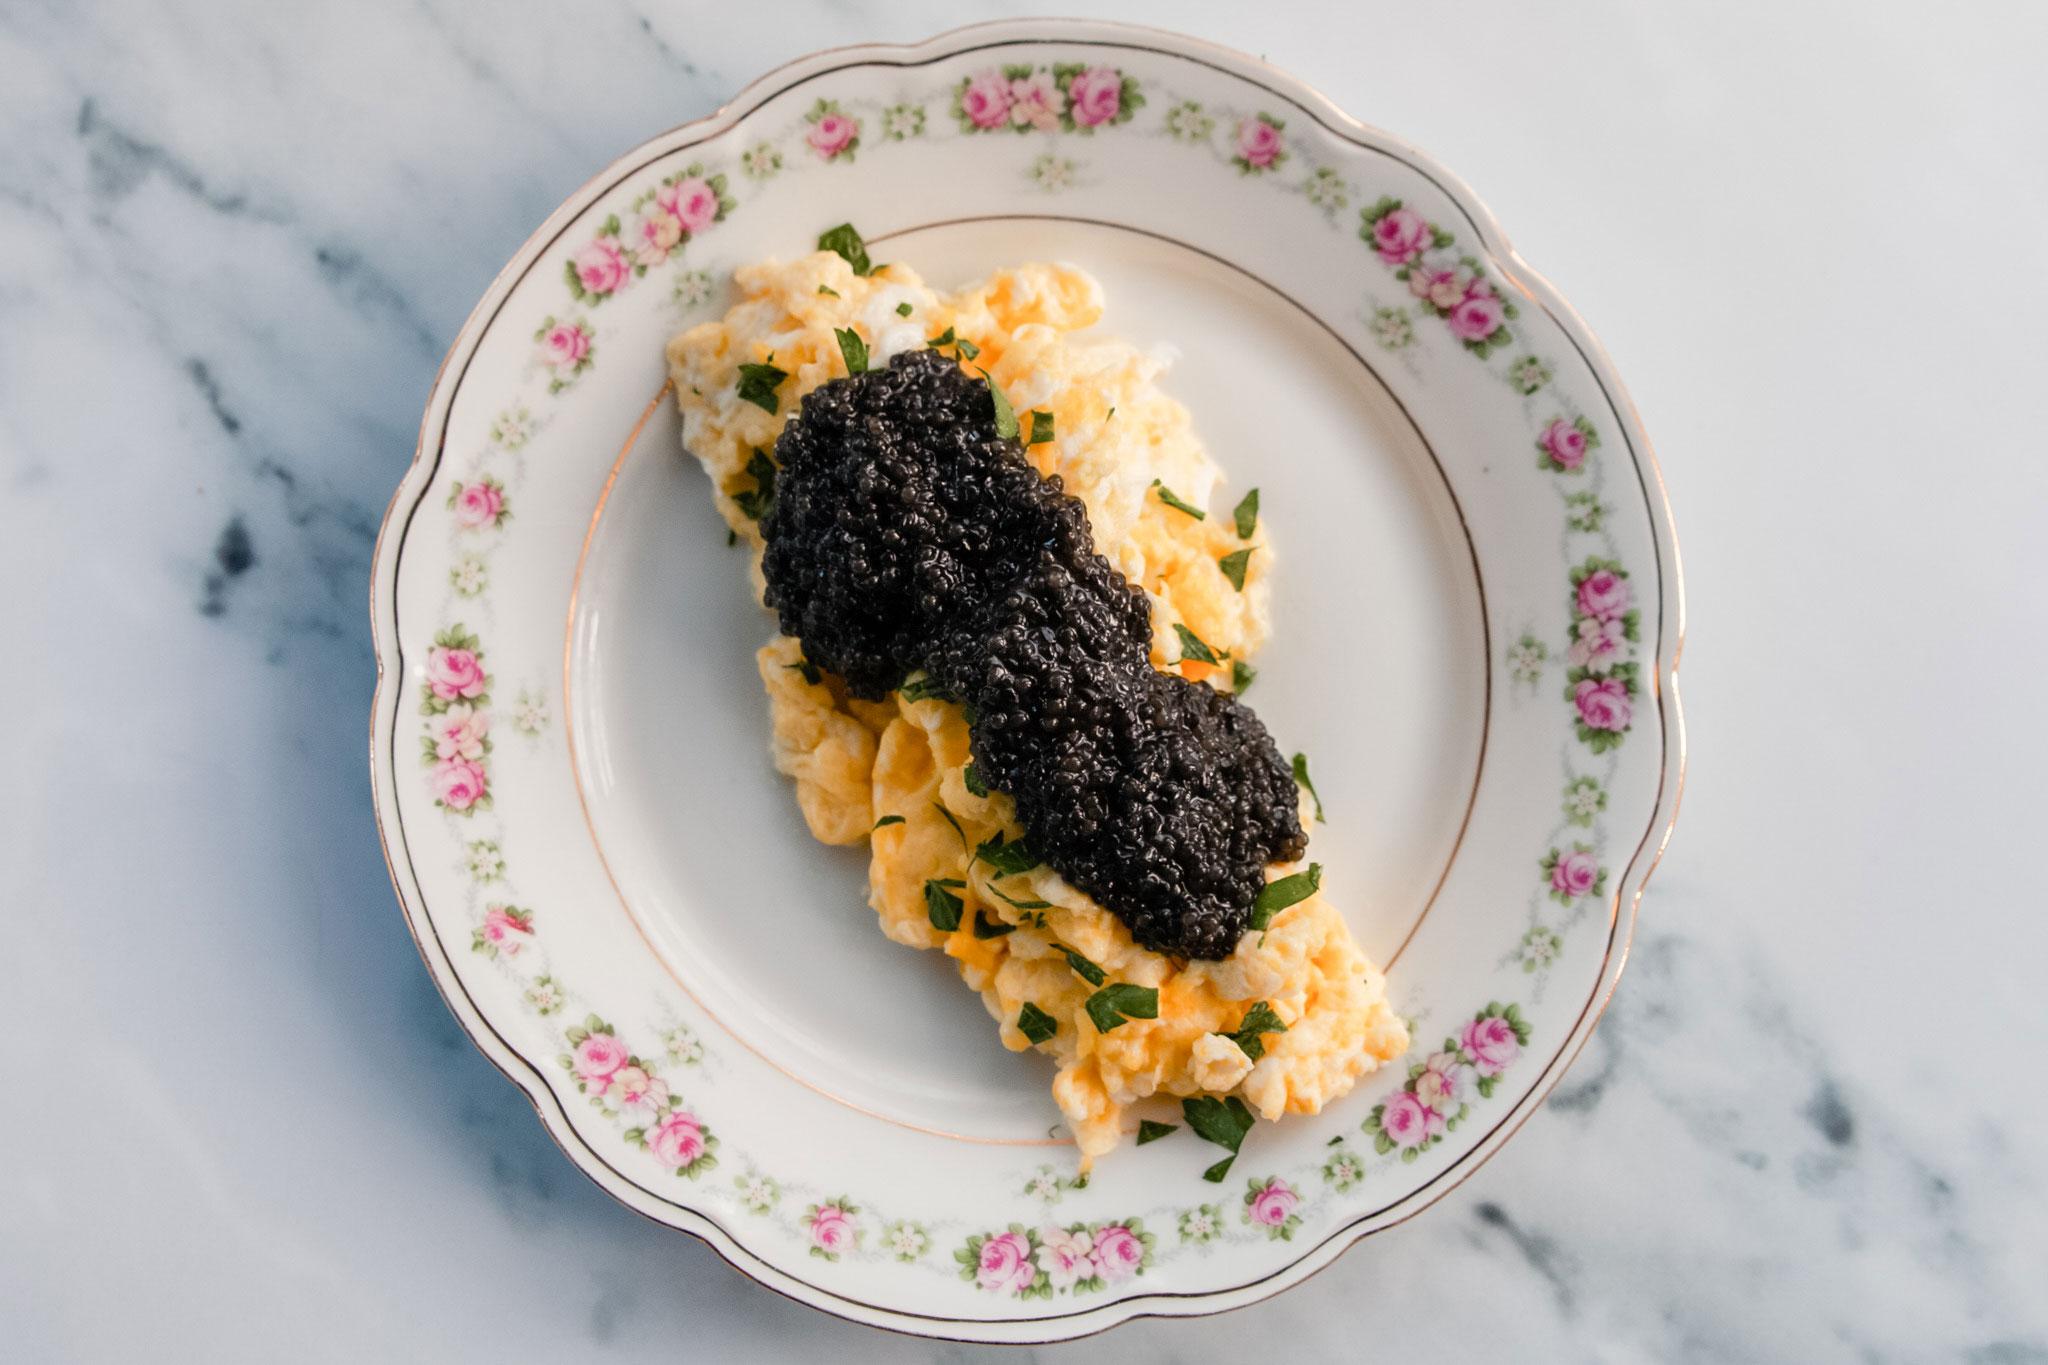 A plate of scrambled eggs topped with black caviar.